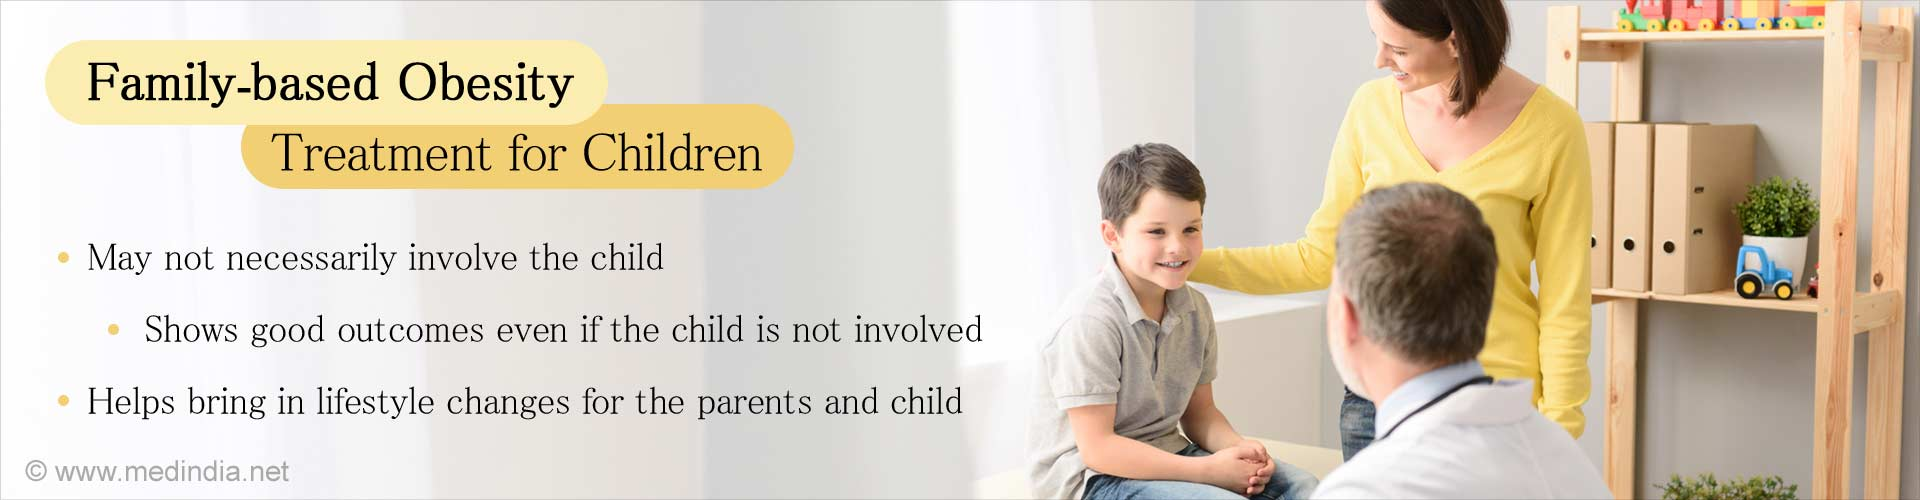 Parent's Play a Crucial Role in Treating an Obese Child